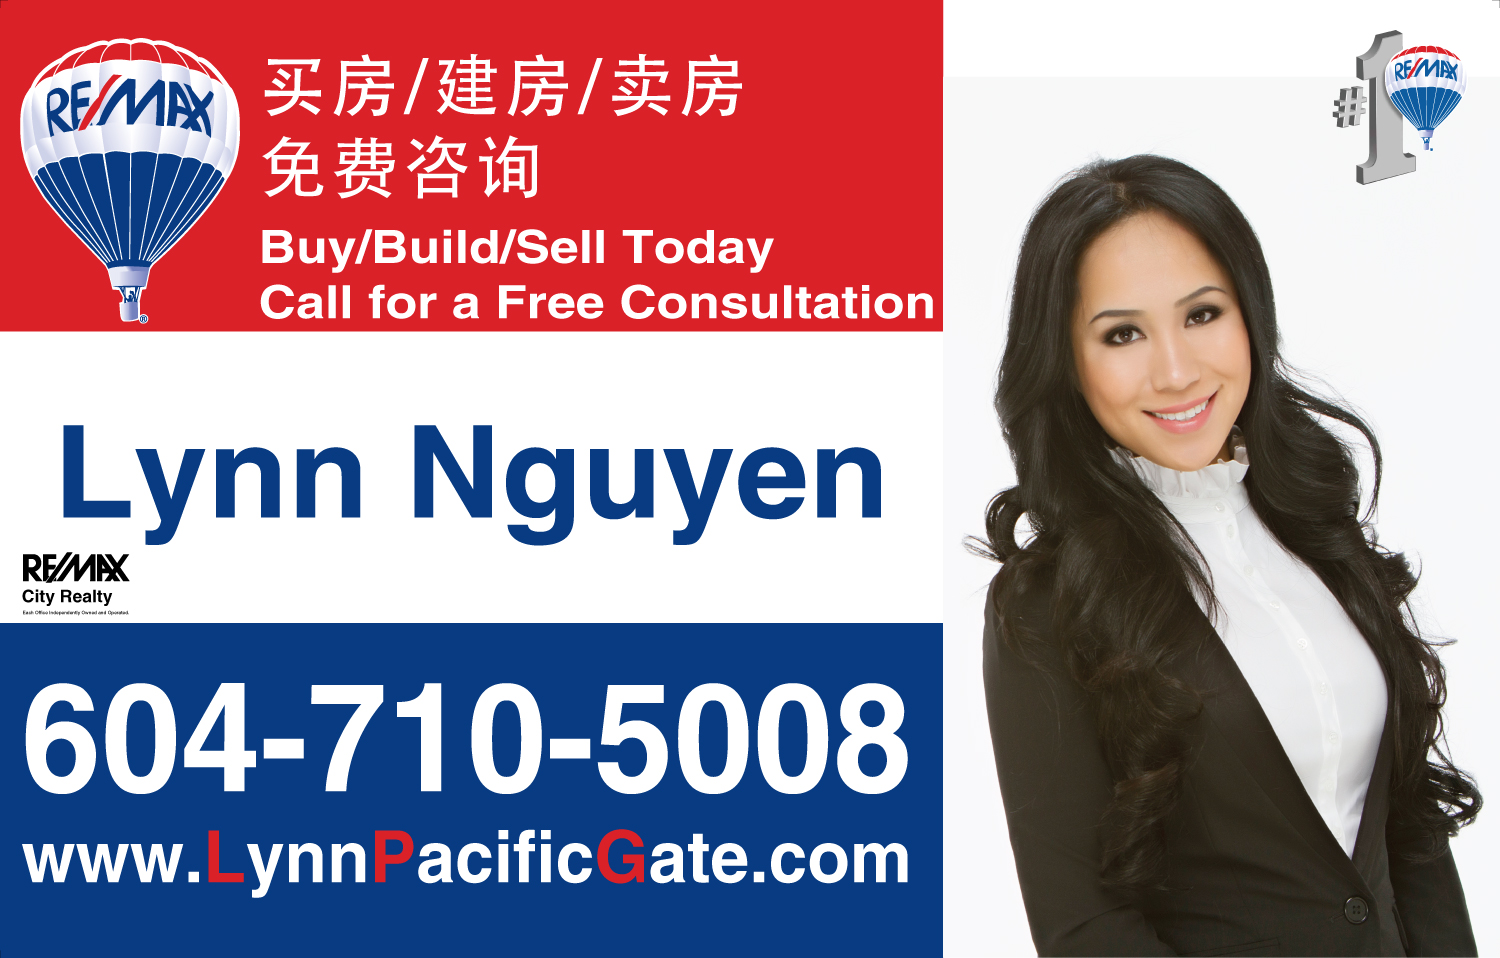 nguyen lynn remax 46x72 dec 2014